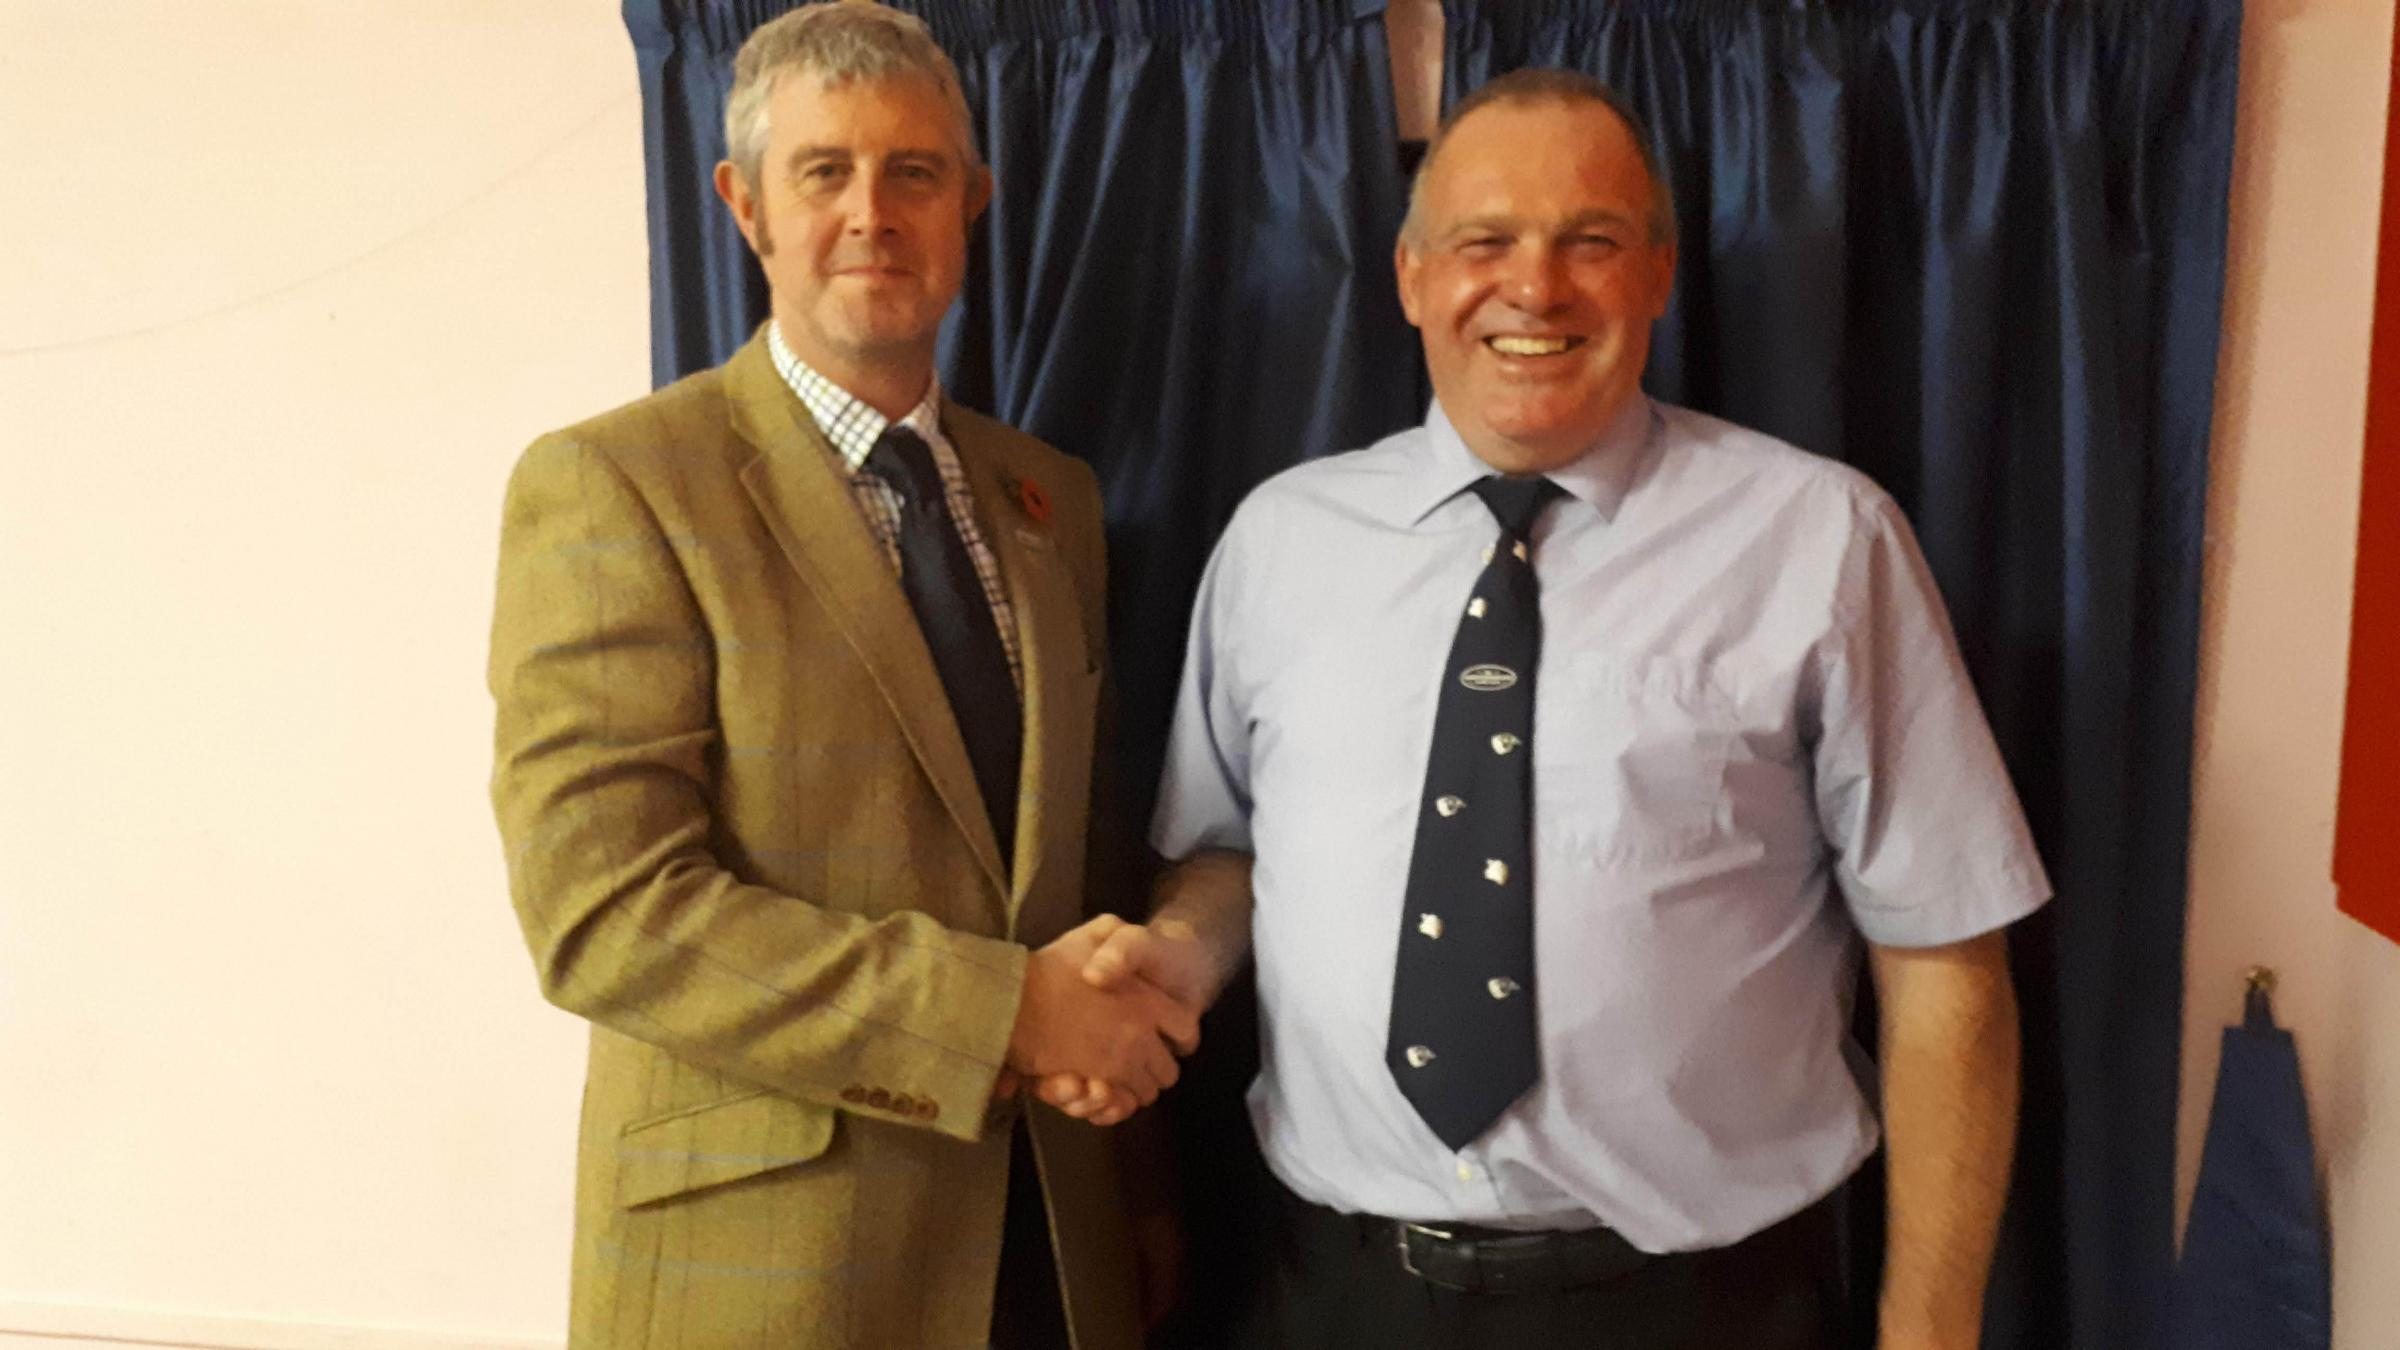 Robert Raine – Chairman of Northumberland County Show, with outgoing Chairman, James Wardle.